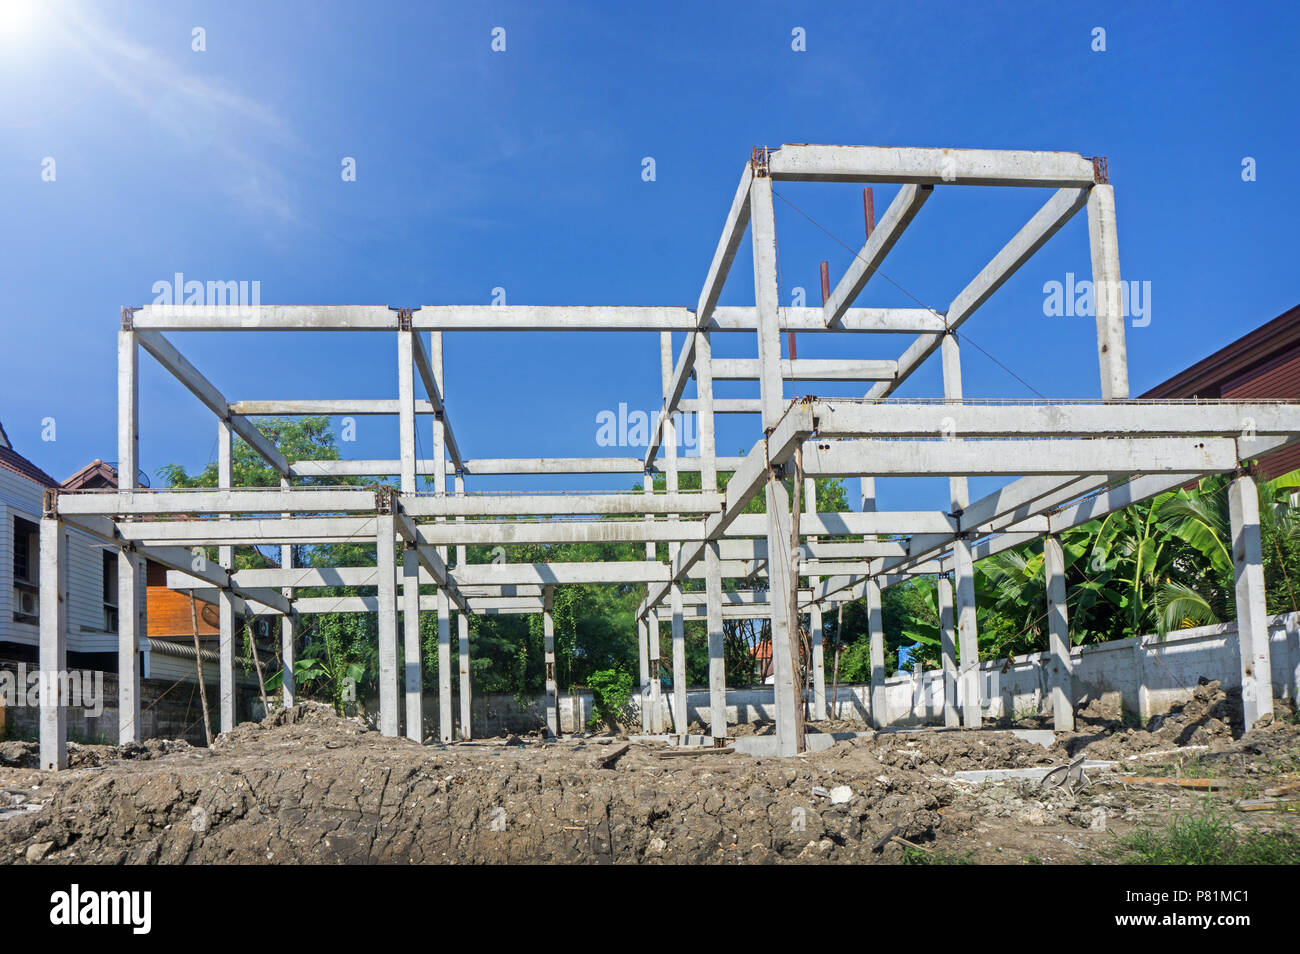 New residential construction home concrete framing against a blue sky